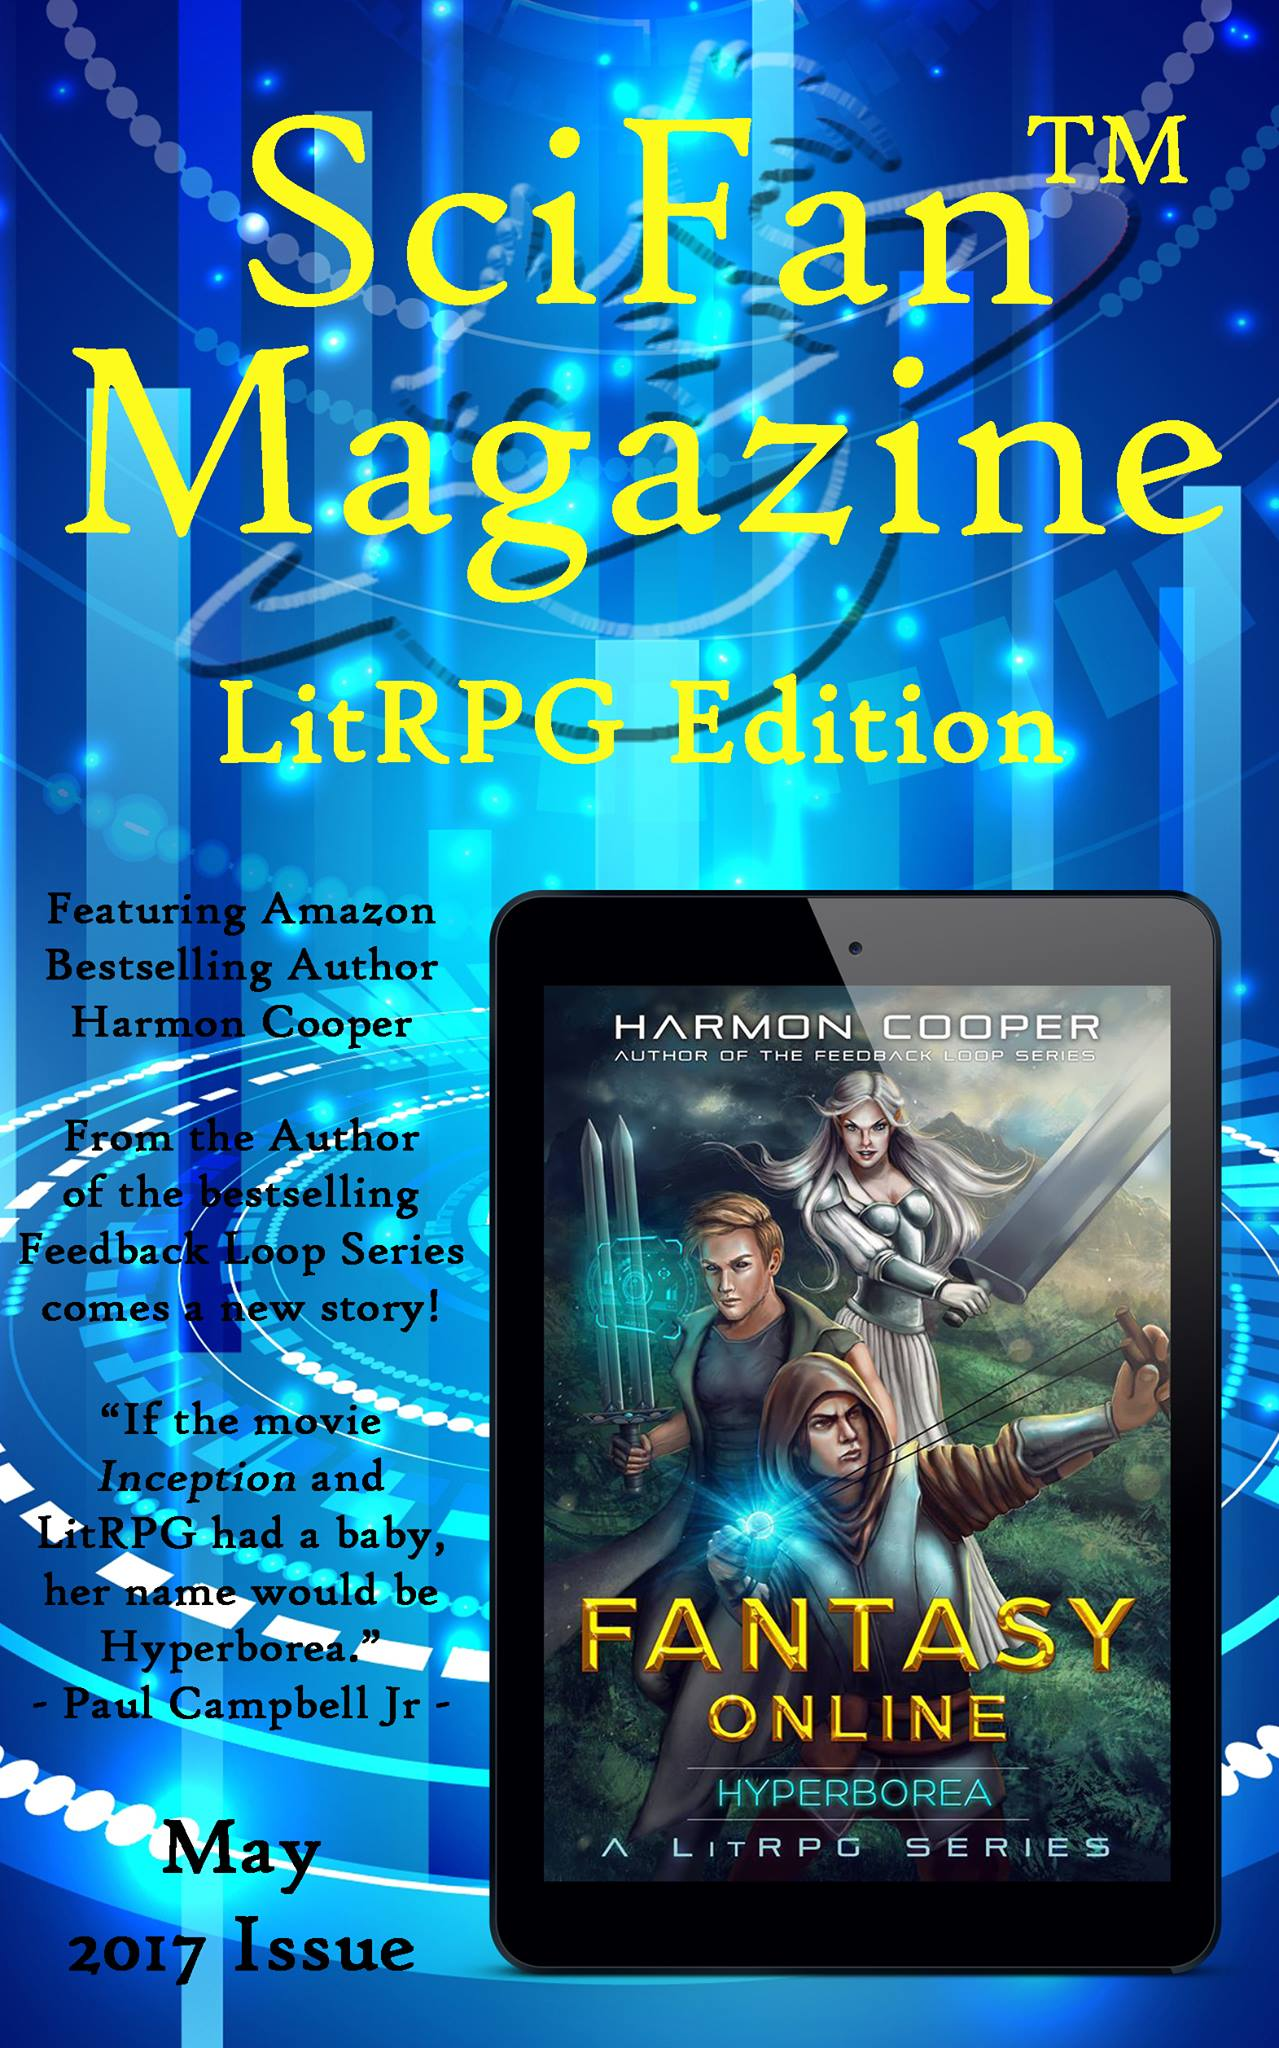 SciFan Magazine LitRPG Edition